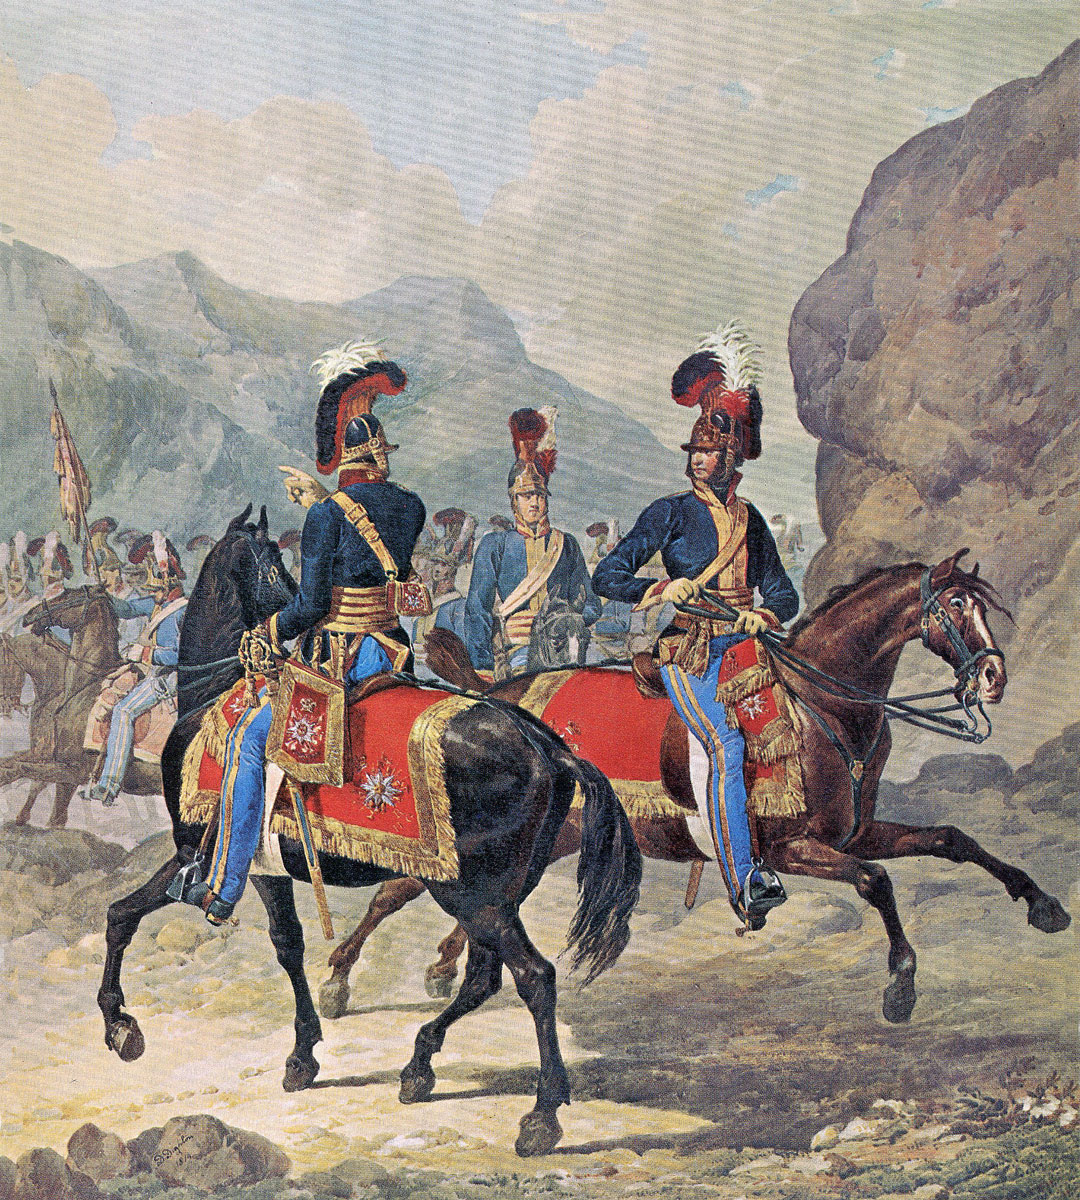 Royal Horse Guards in Spain: Battle of Vitoria on 21st June 1813 during the Peninsular War: picture by Denis Dighton